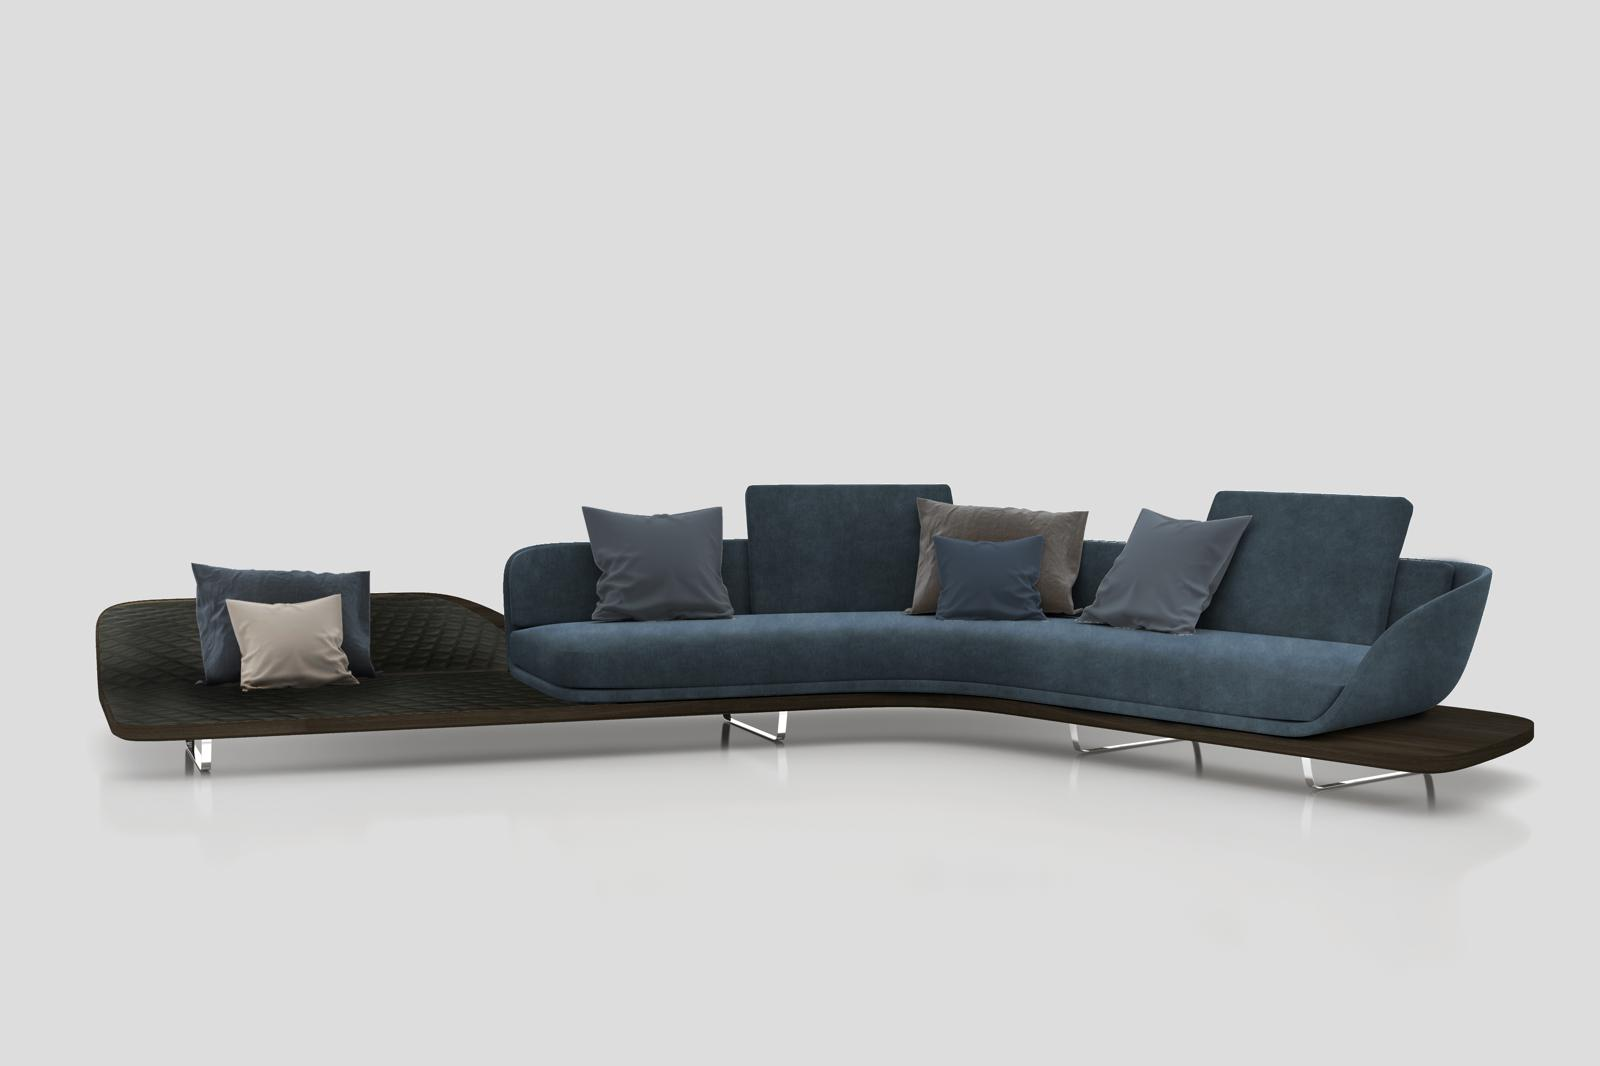 Sofa chaise long sofa chaise longue cama and sofa chaise for Oferta sofa cama chaise longue